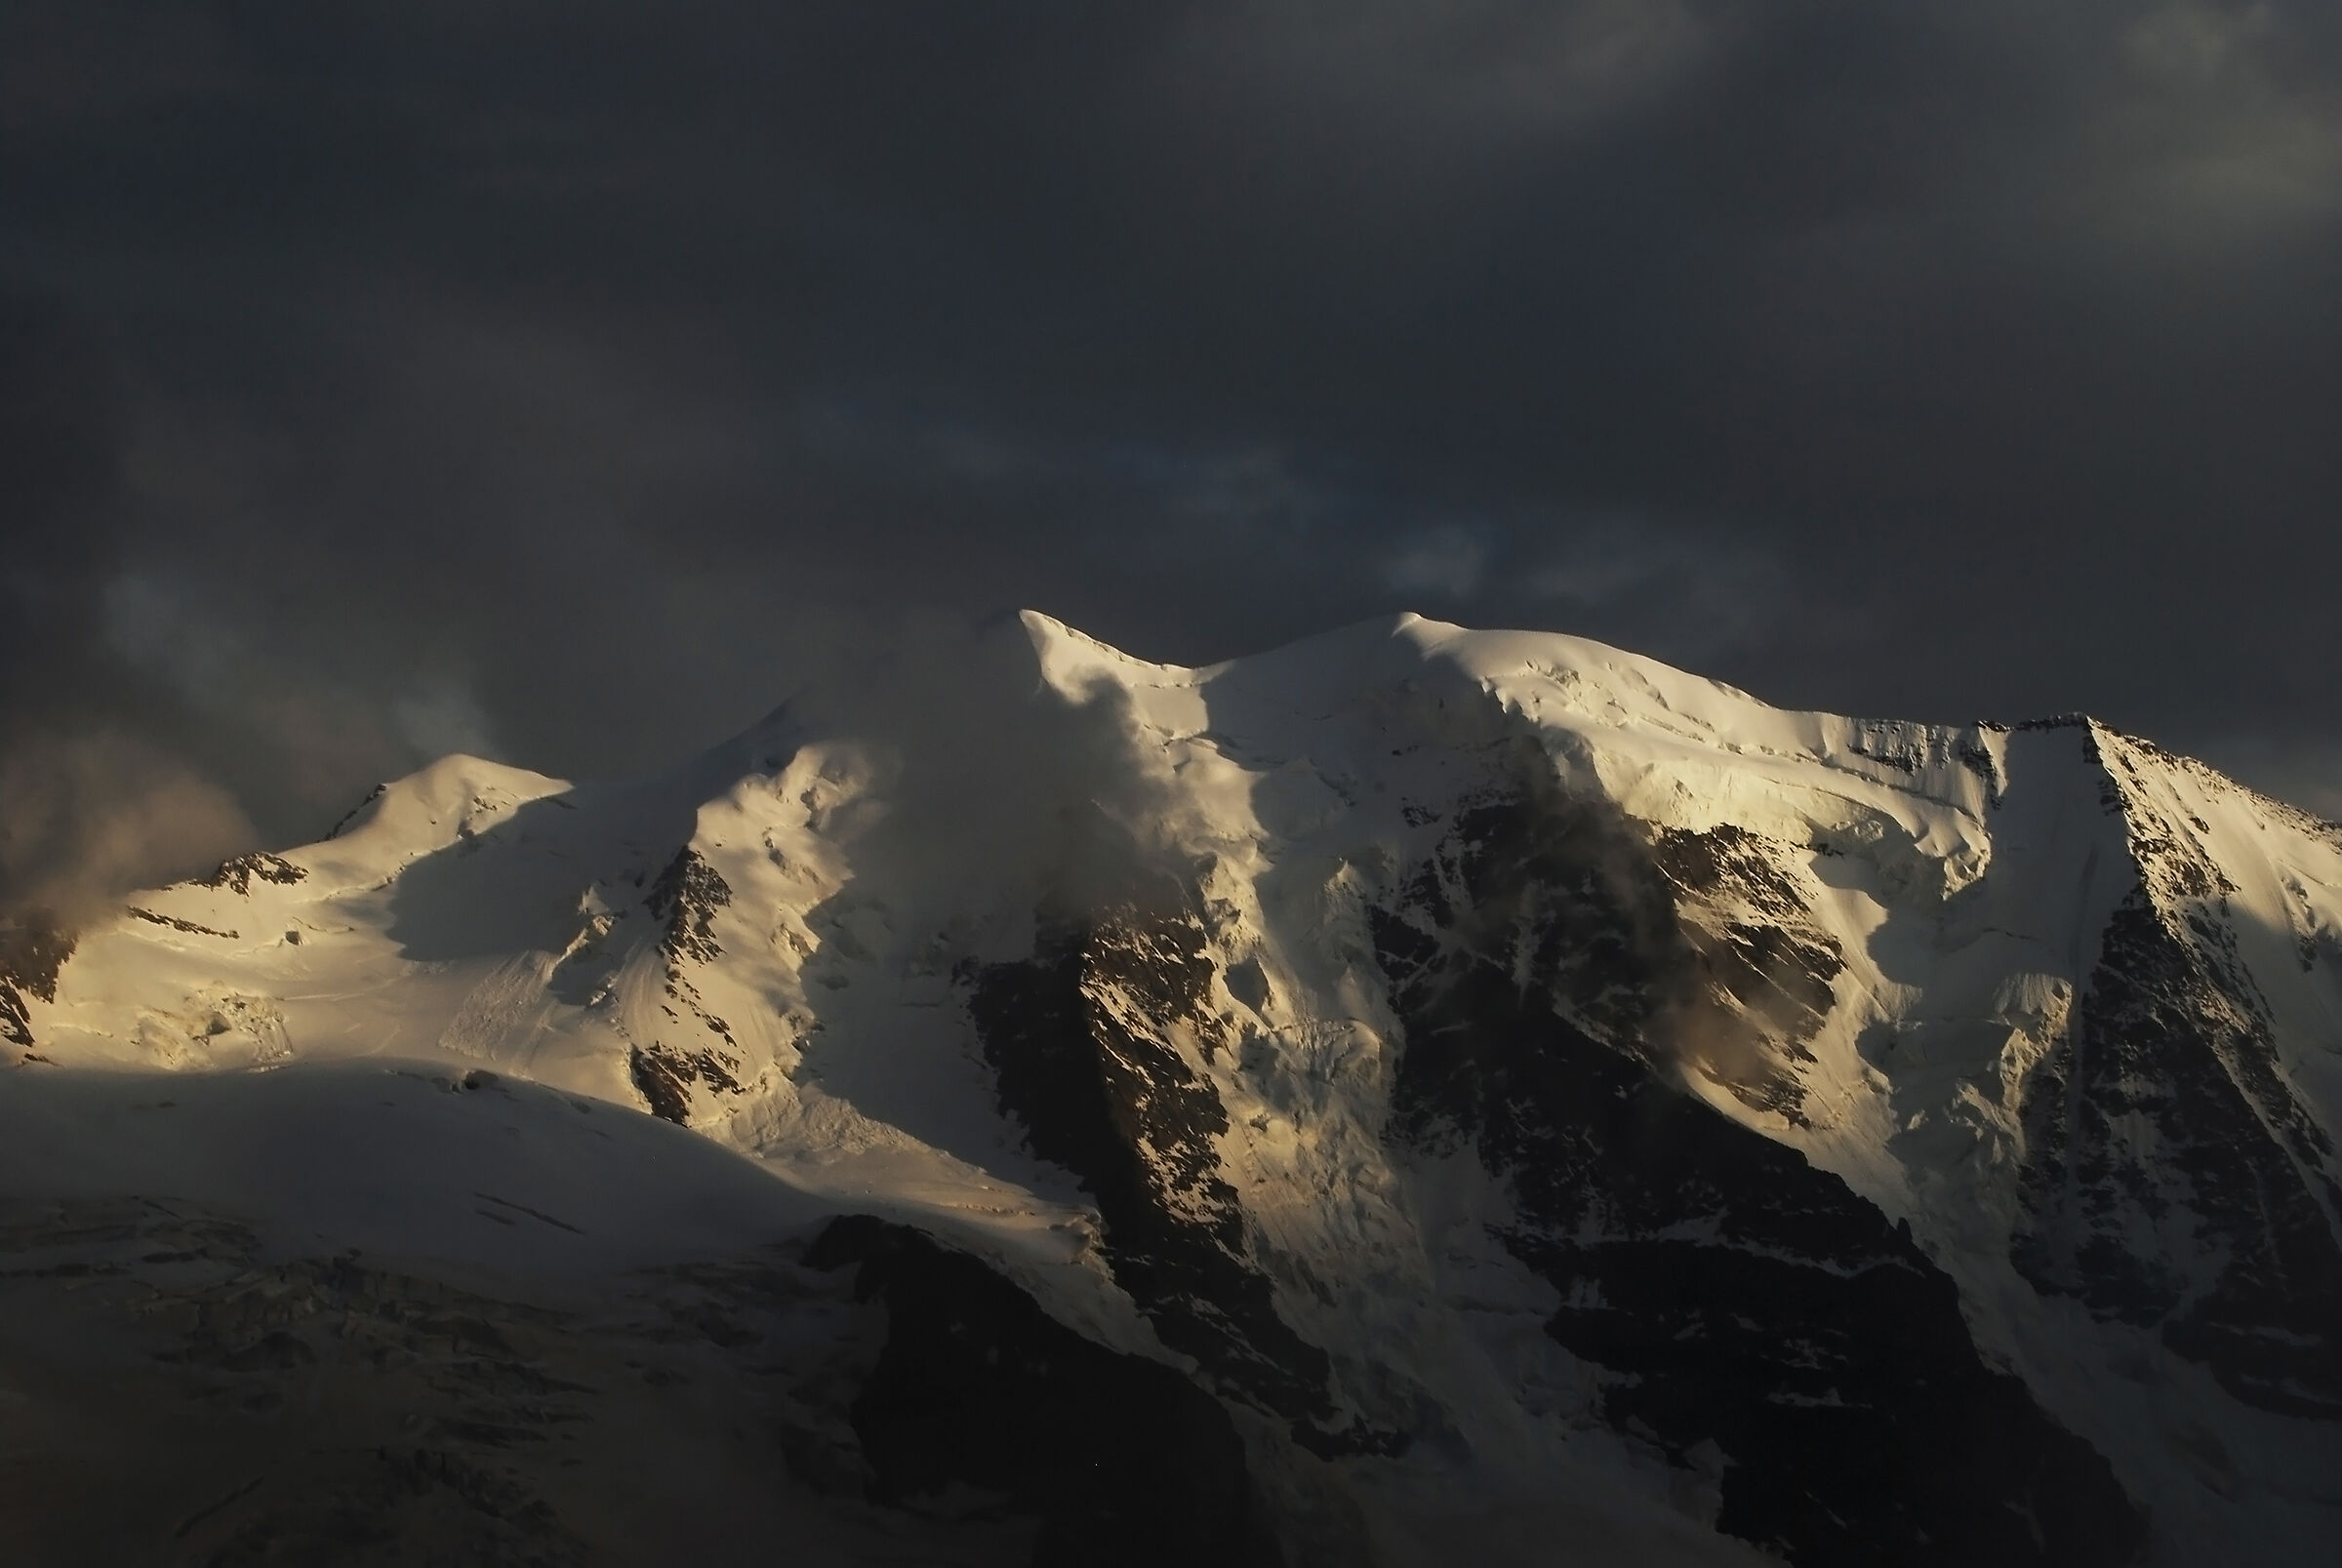 Piz Pal, sunny and overwhelmed by menacing clouds...